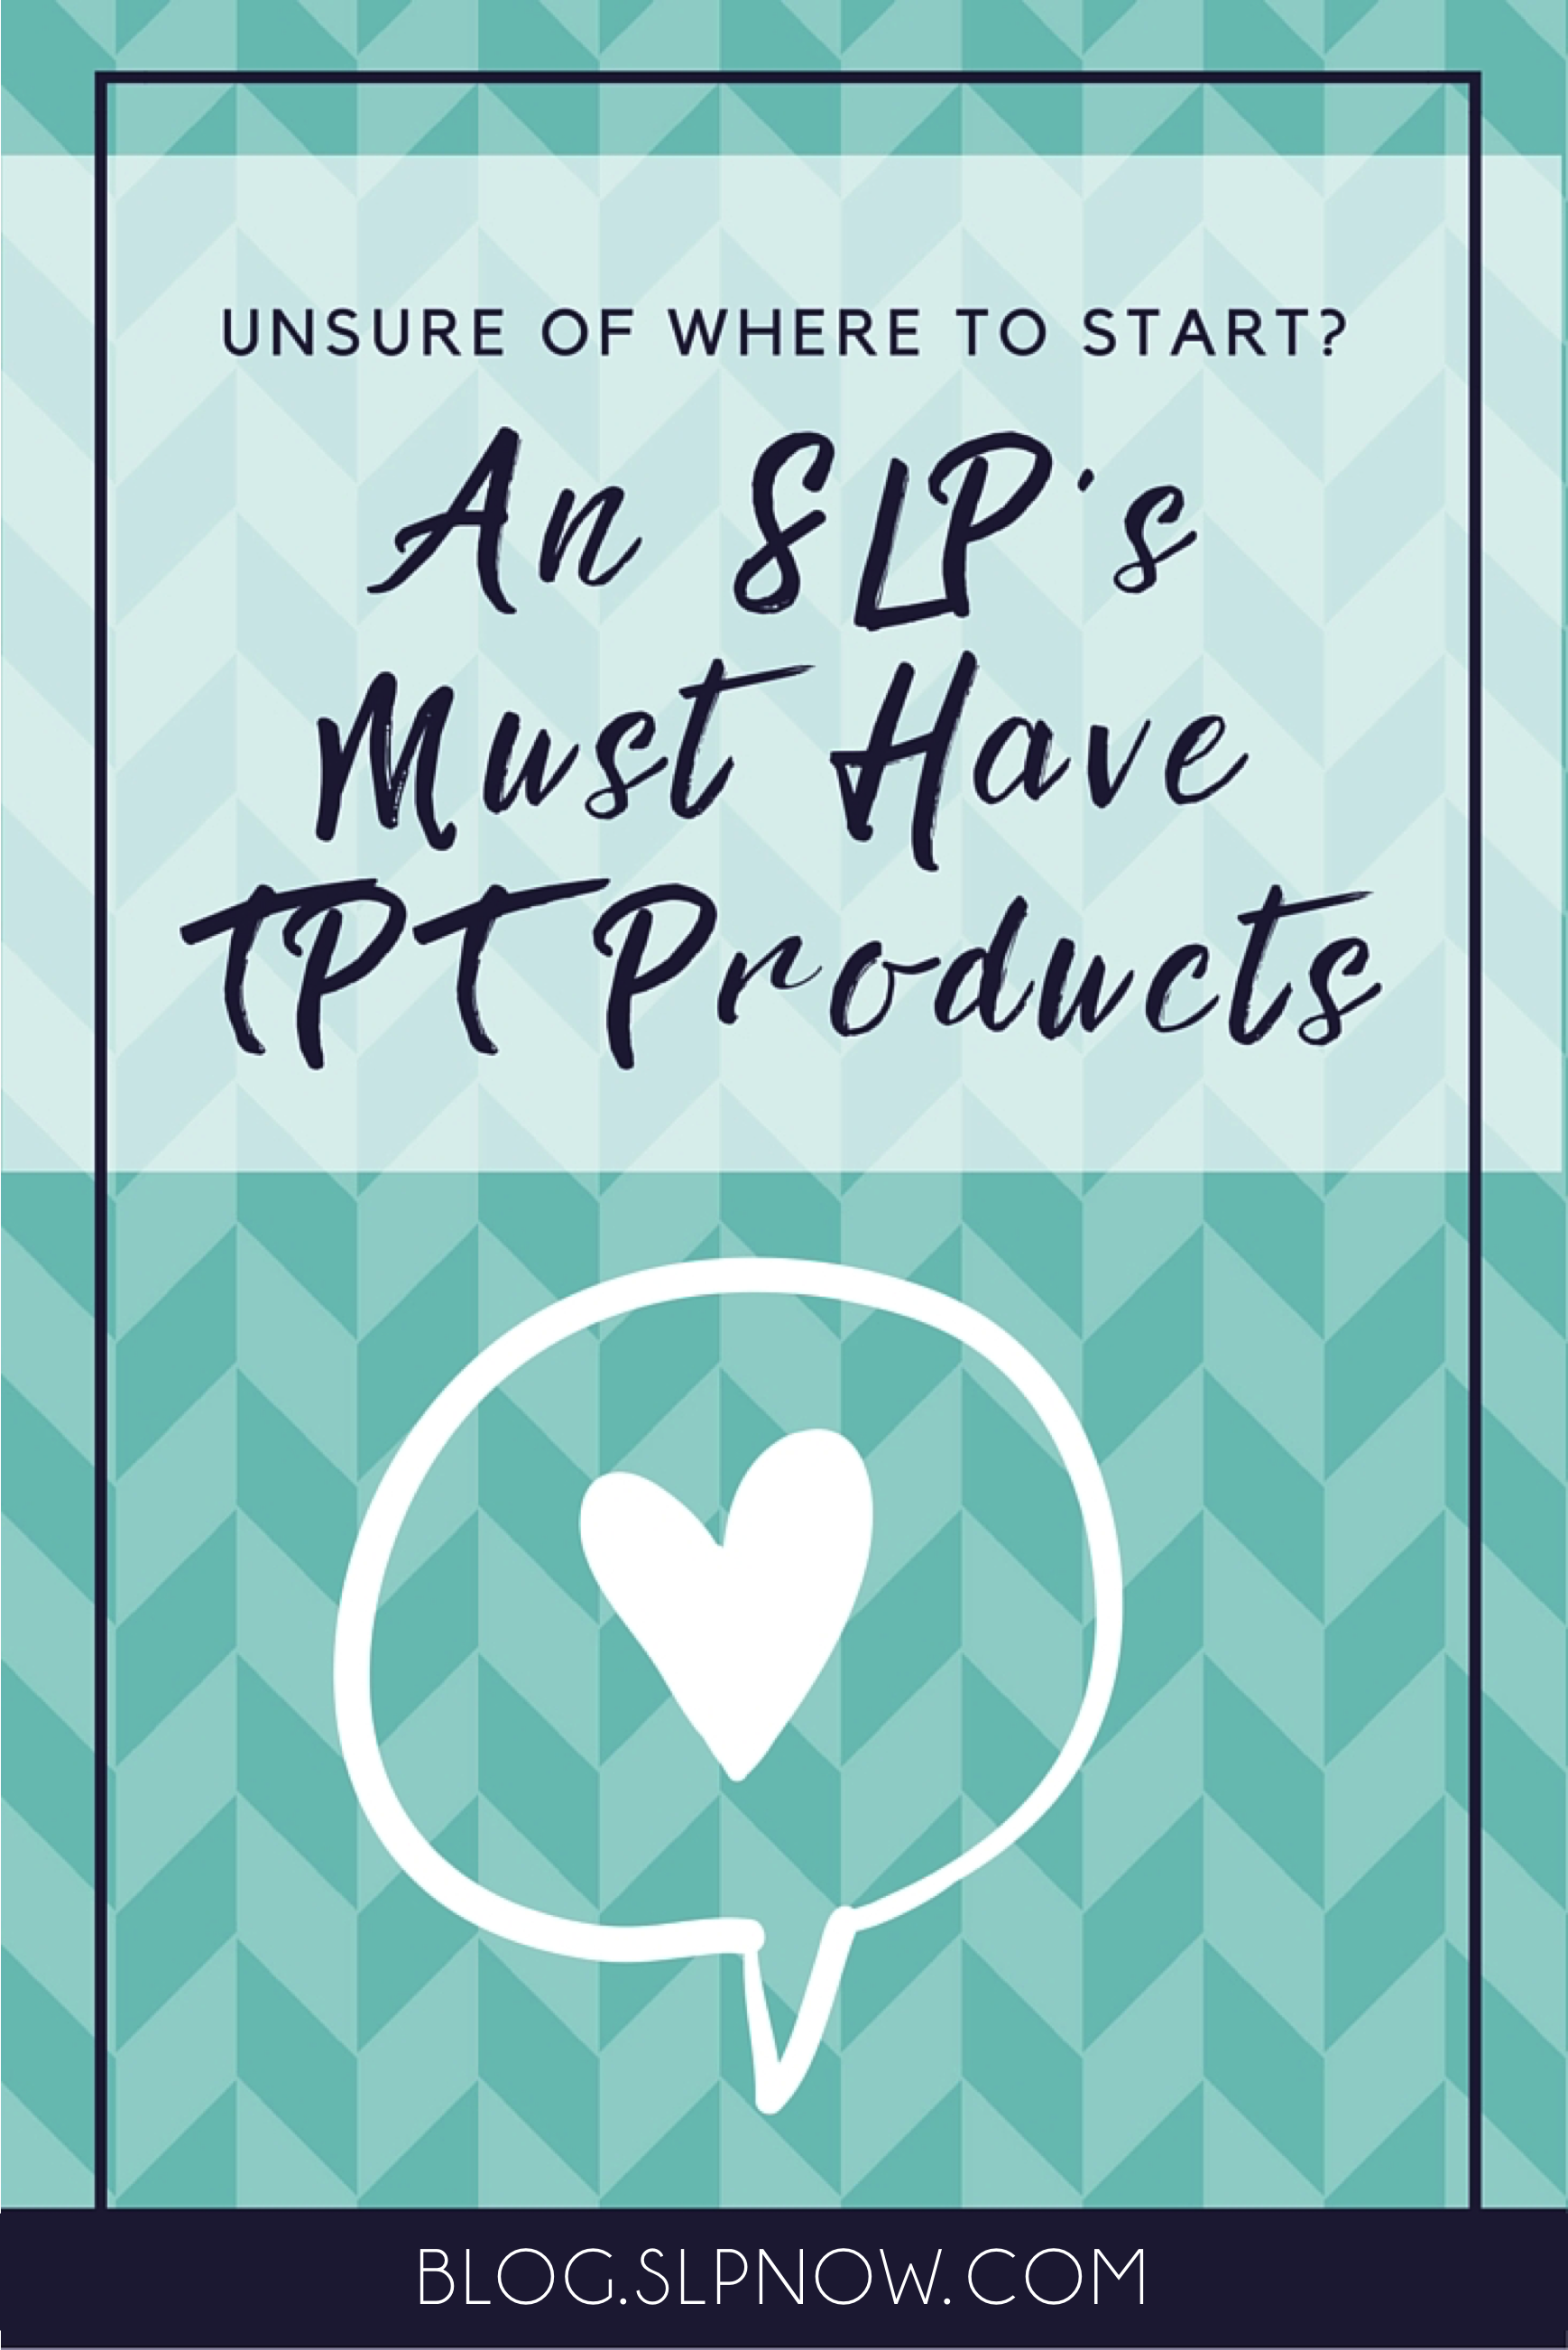 Do you want to know what my favorite Teachers Pay Teachers products are for SLPs? I've compiled a list of 10 paid products created by other SLPs and sold on Teachers Pay Teachers. I've used all 10 of them myself and think they're absolutely wonderful, so check them out!